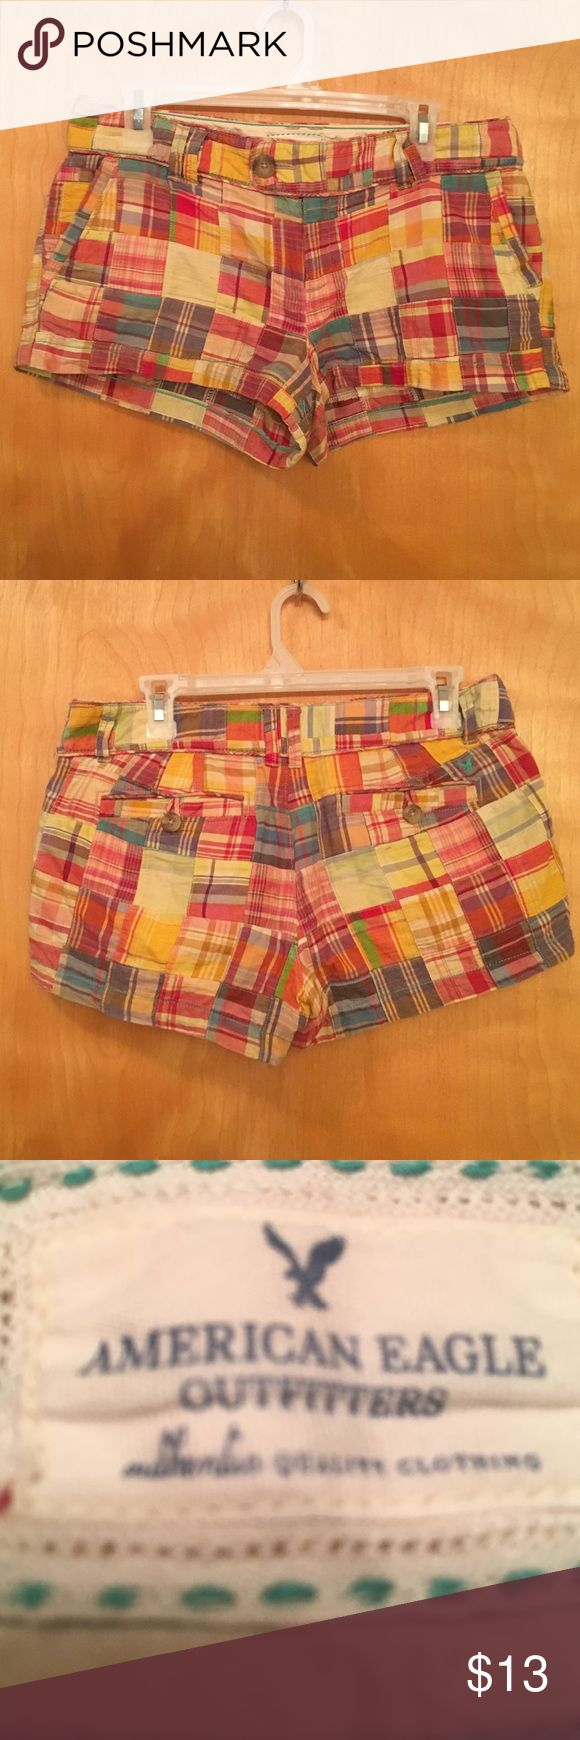 AMERICAN EAGLE OUTFITTERS patchwork shorts 🌺 AMERICAN EAGLE OUTFiTTER patchwork shorts. American Eagle Outfitters Shorts